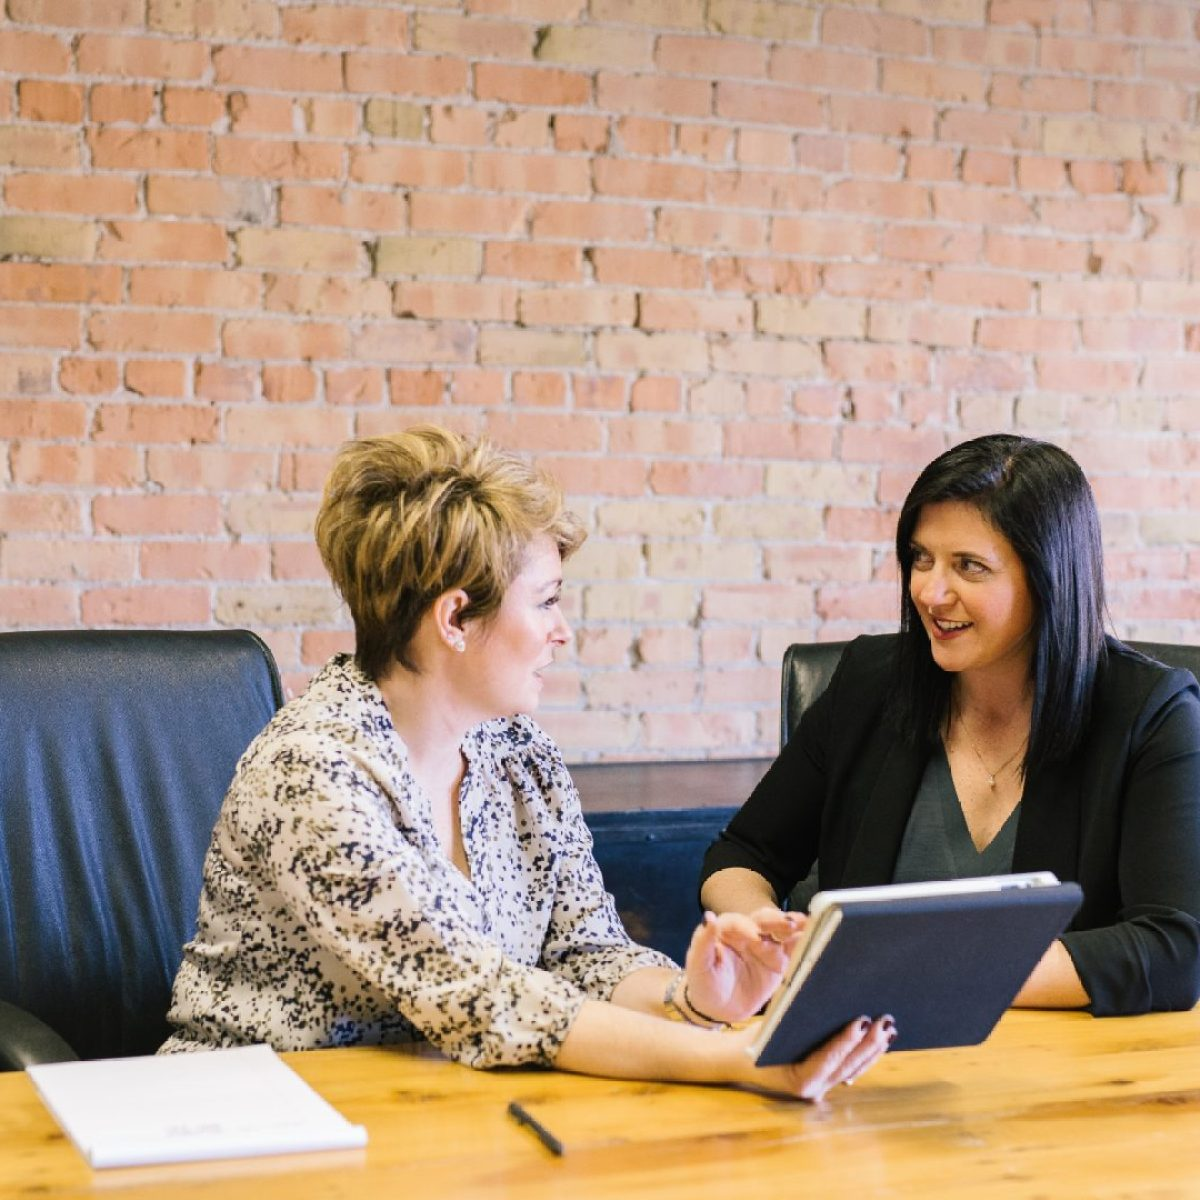 1 on 1 accountants meeting at desk two women